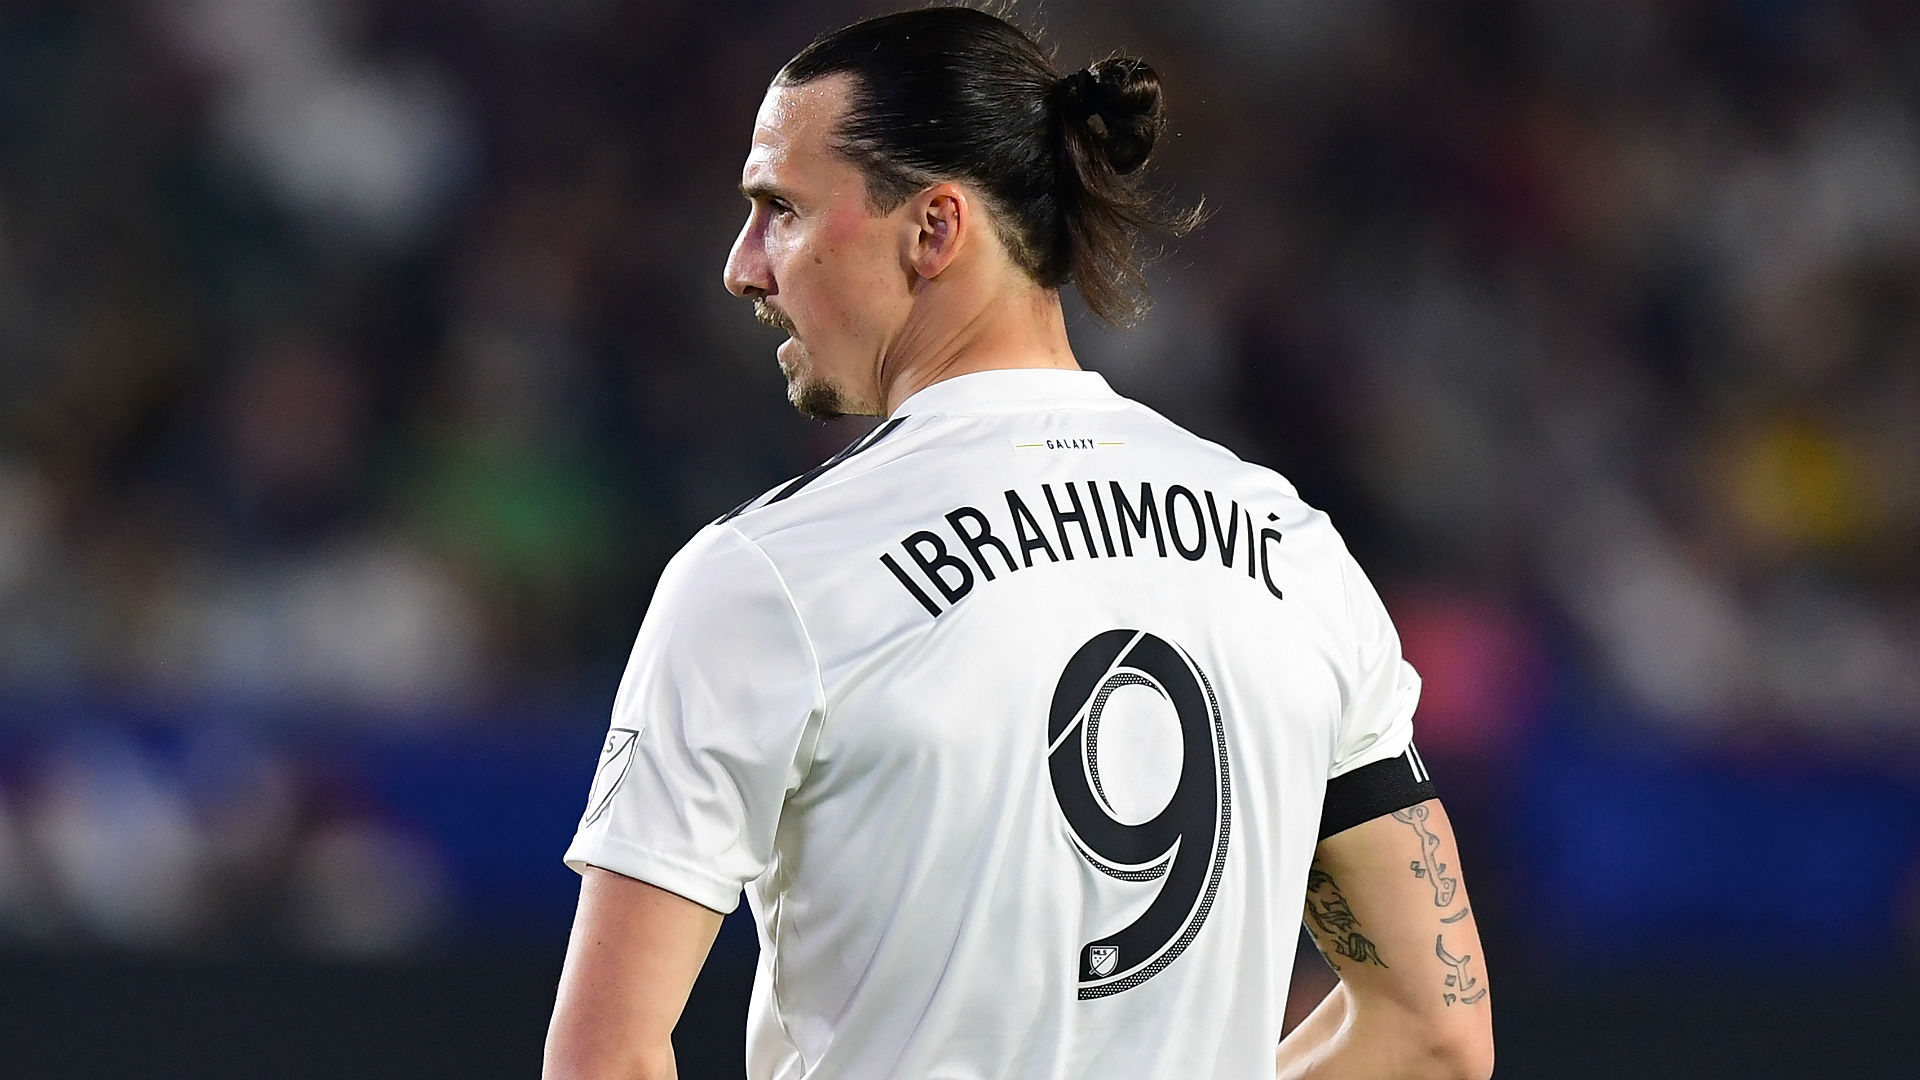 Zlatan Ibrahimovic Scored His 500th Professional Goal In Absolutely Ridiculous Fashion